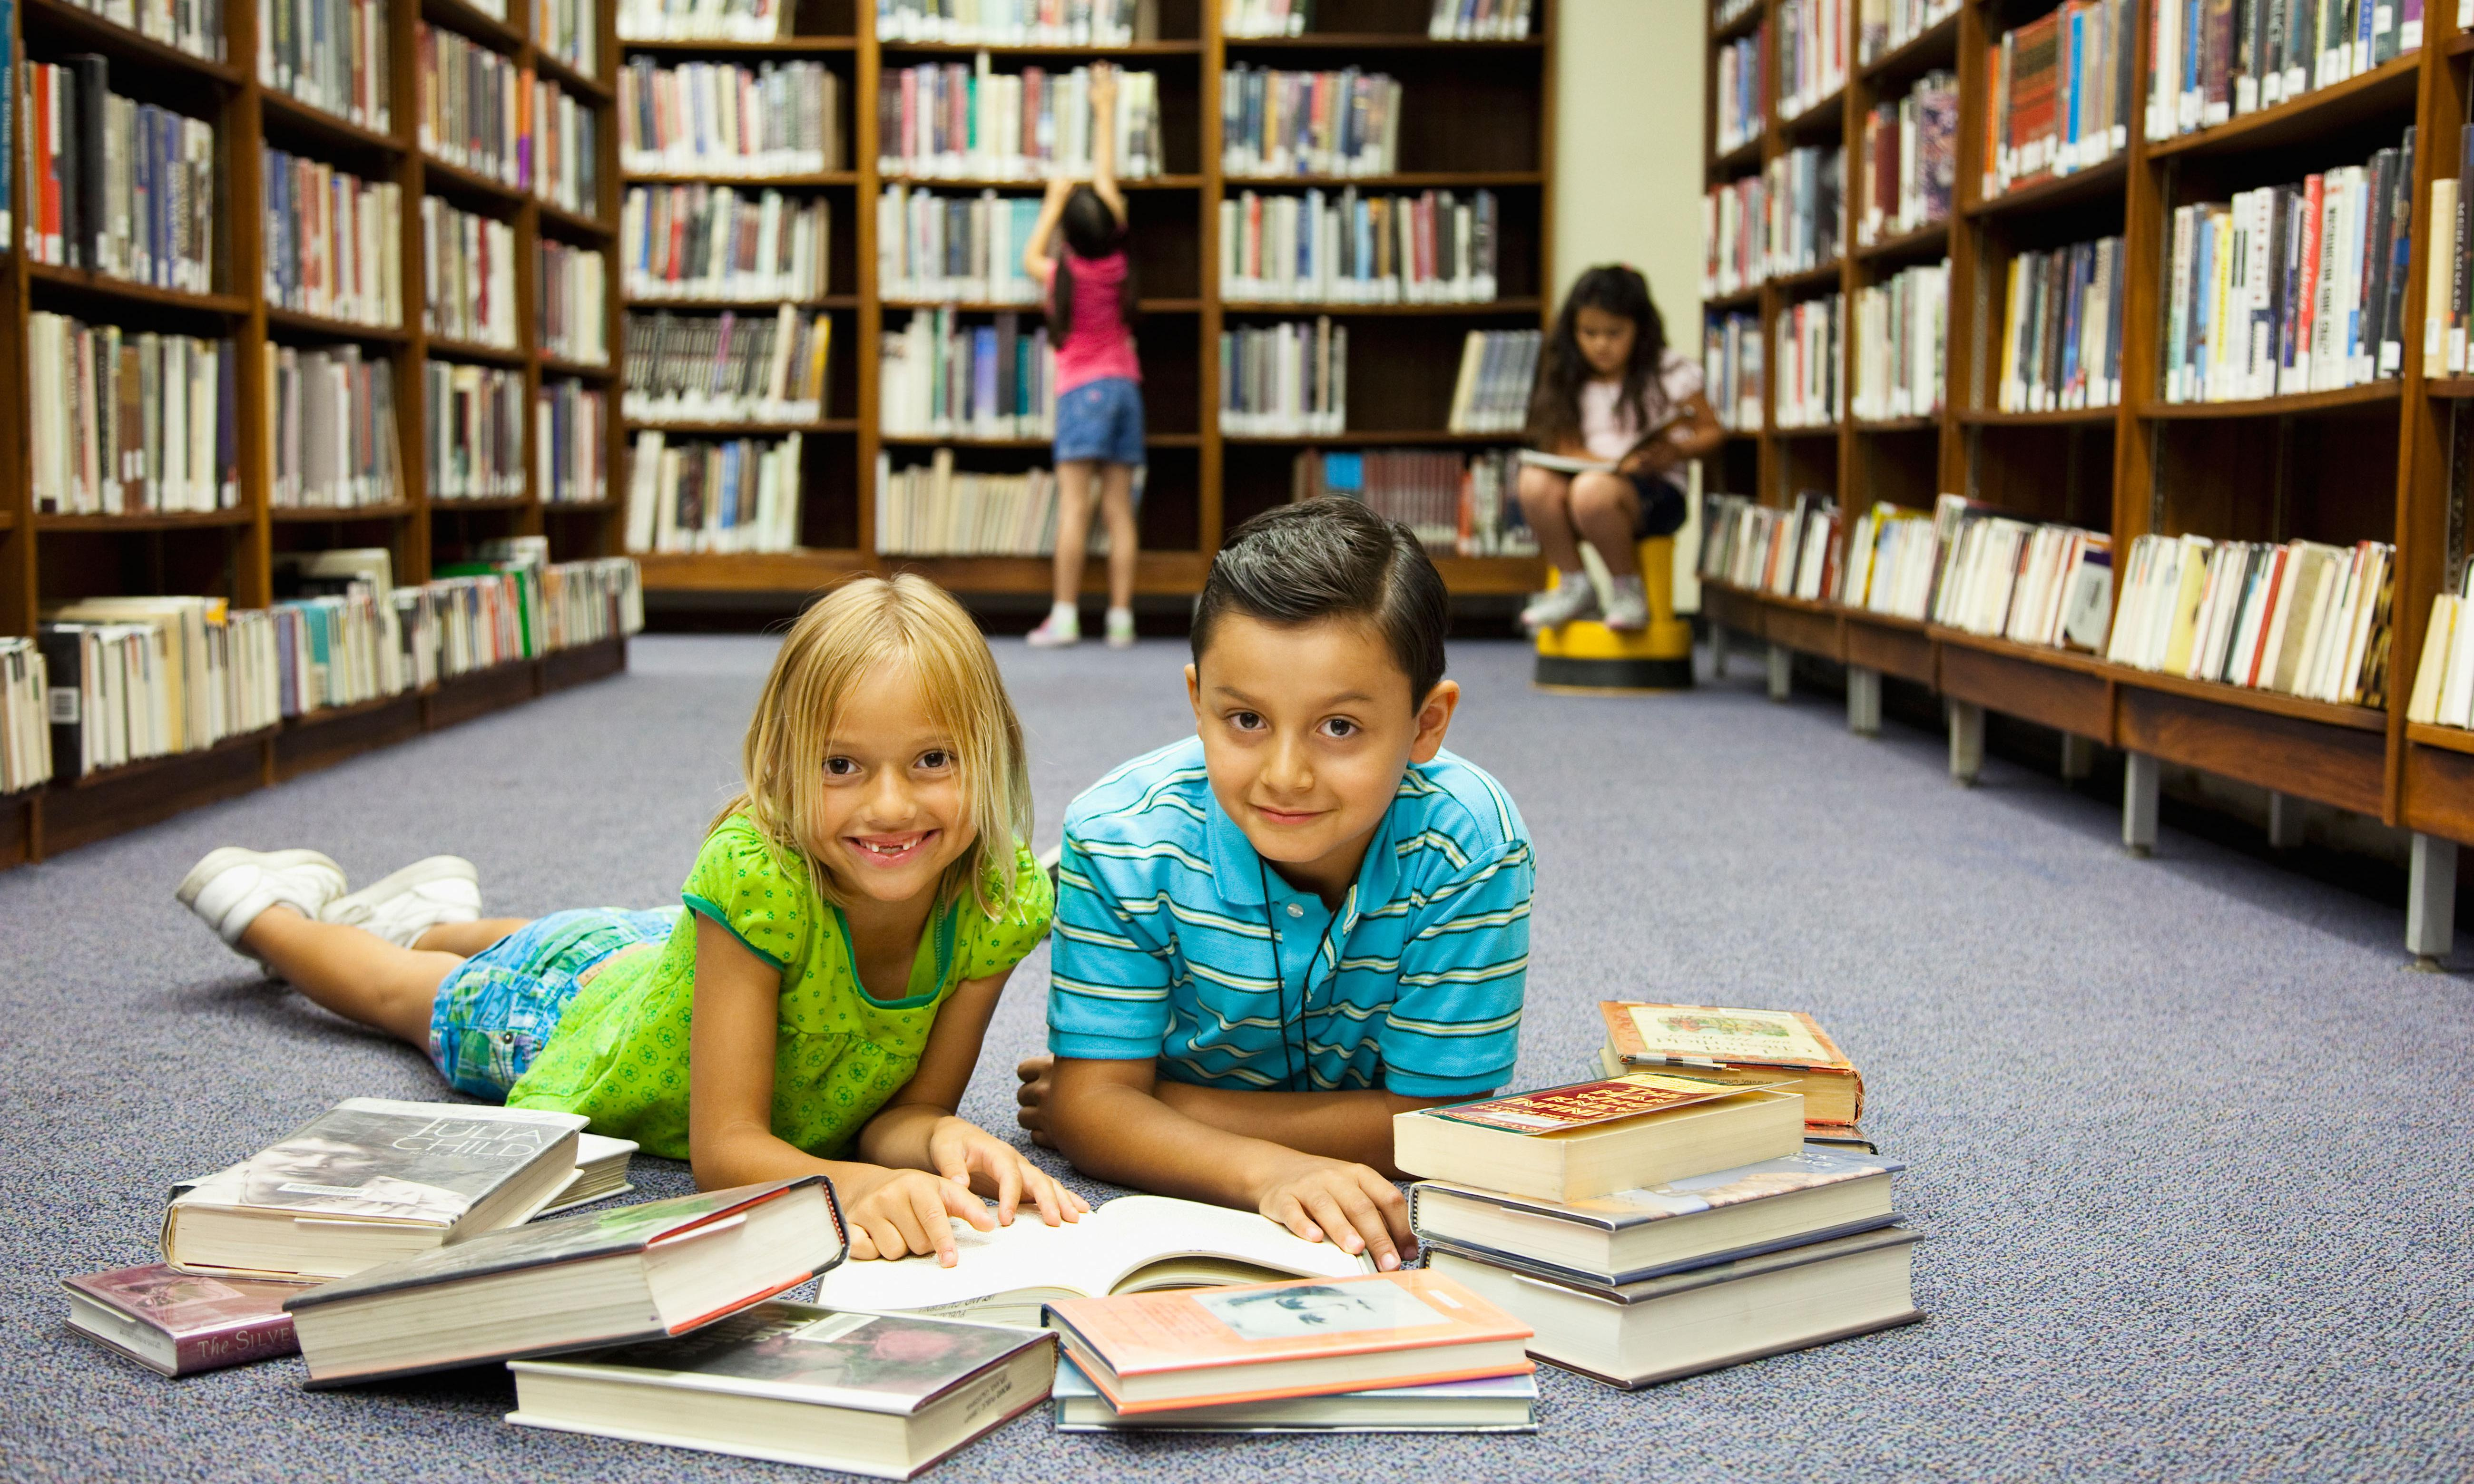 Public libraries are not just about books. At their heart, they are about social equity